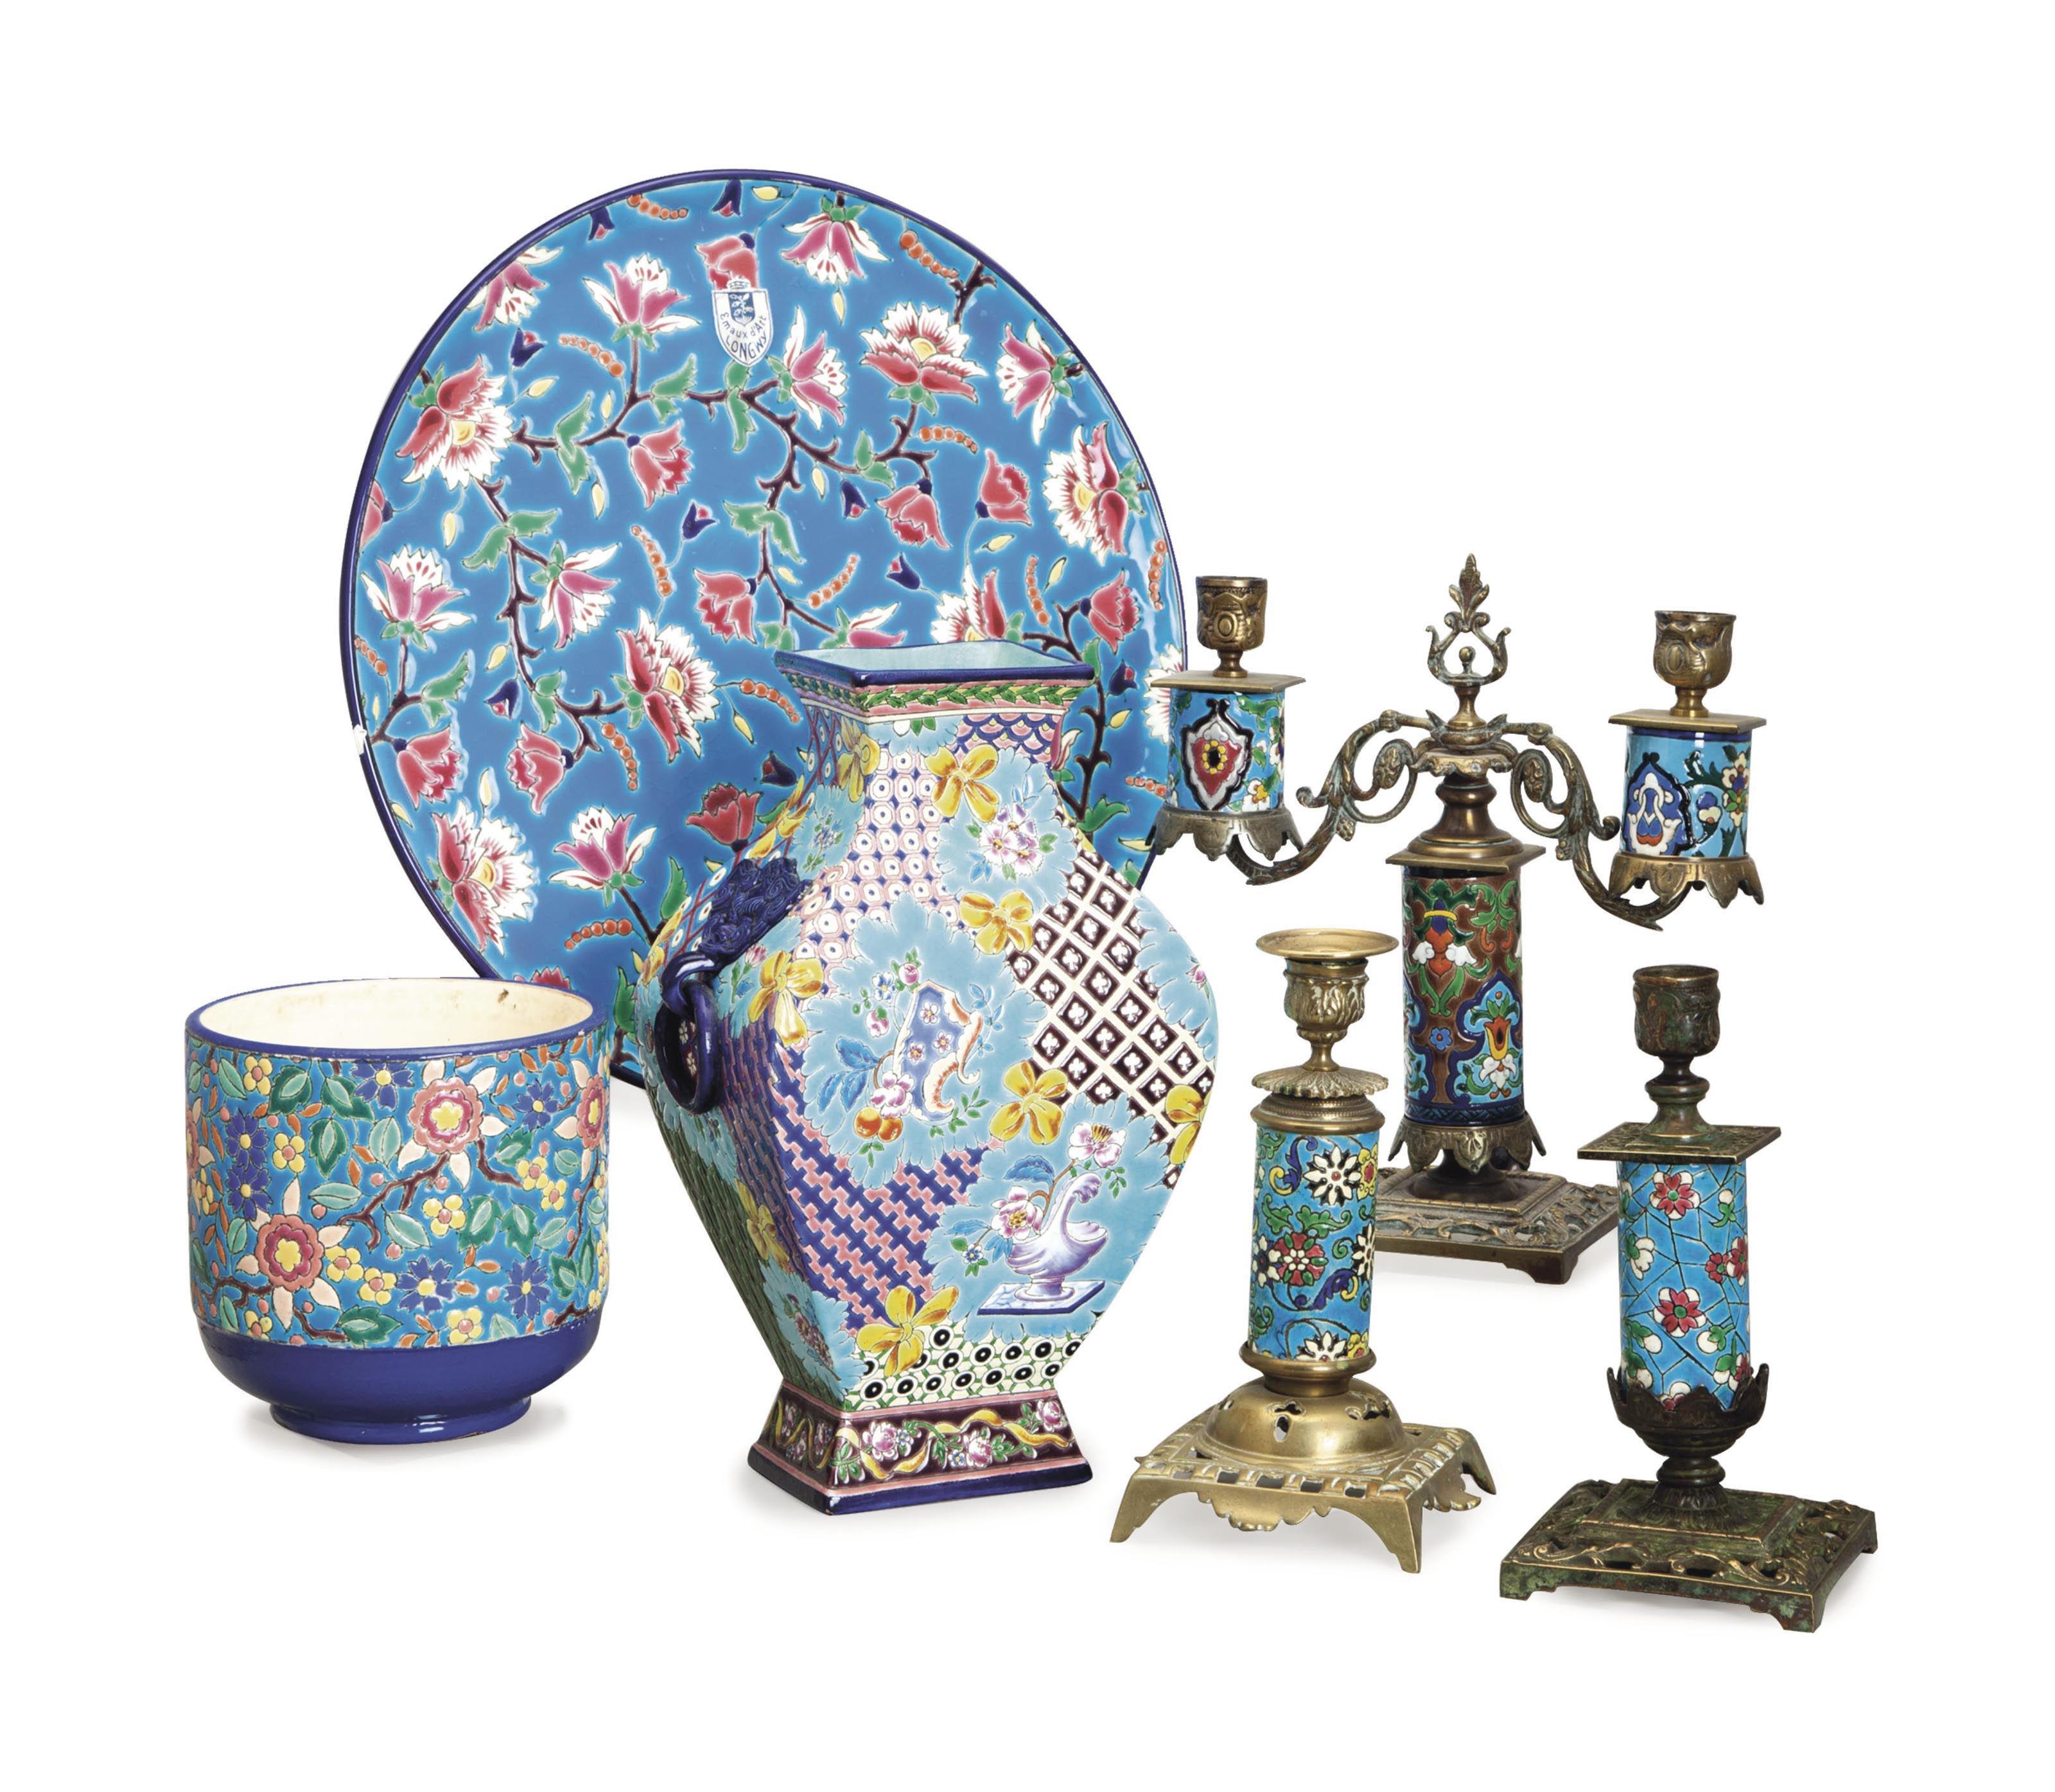 A GROUP OF FRENCH EARTHENWARE DECORATED IN THE ASIAN TASTE,